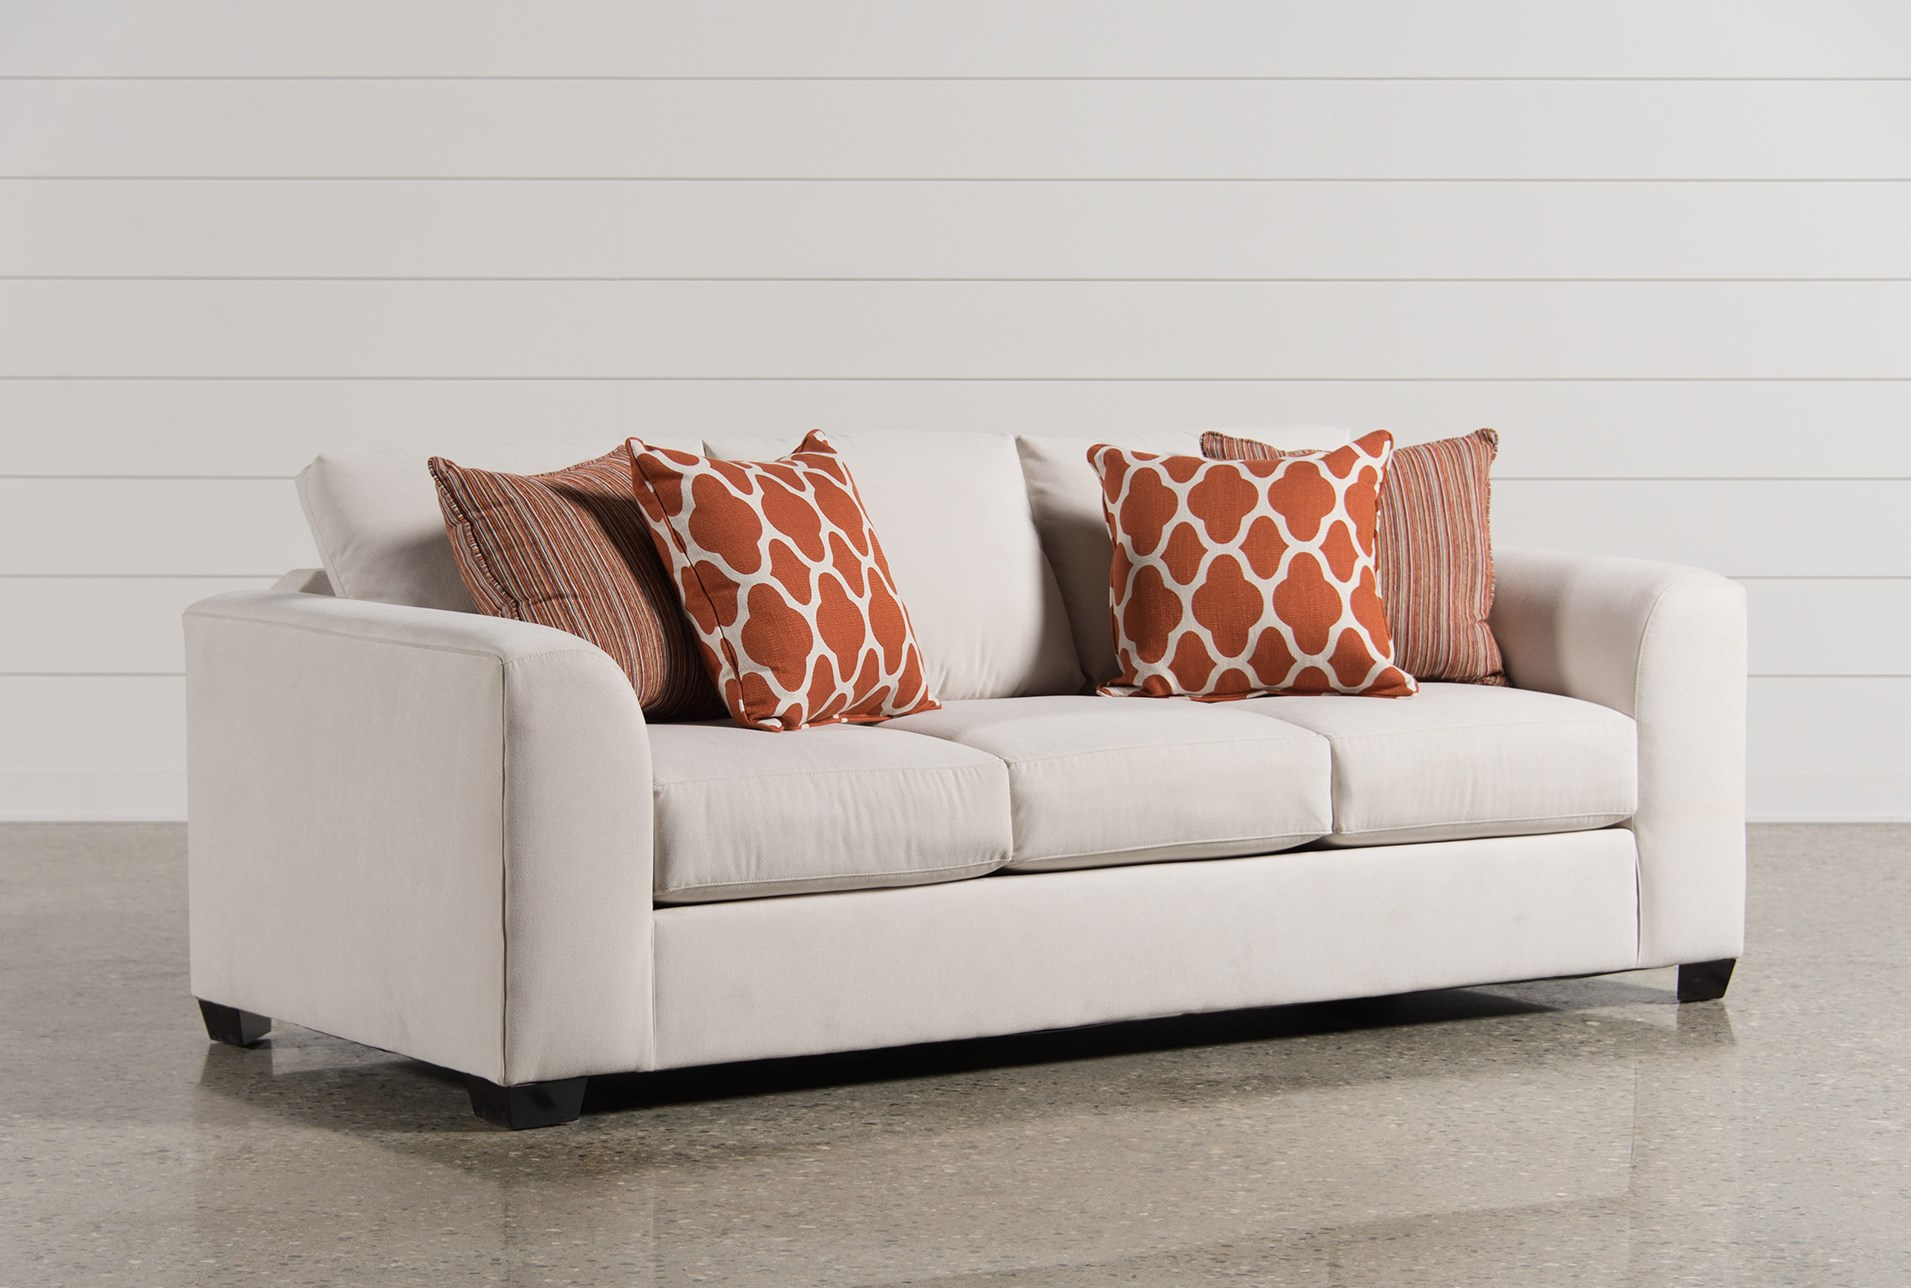 Victoria Sofa Qty 1 Has Been Successfully Added To Your Cart